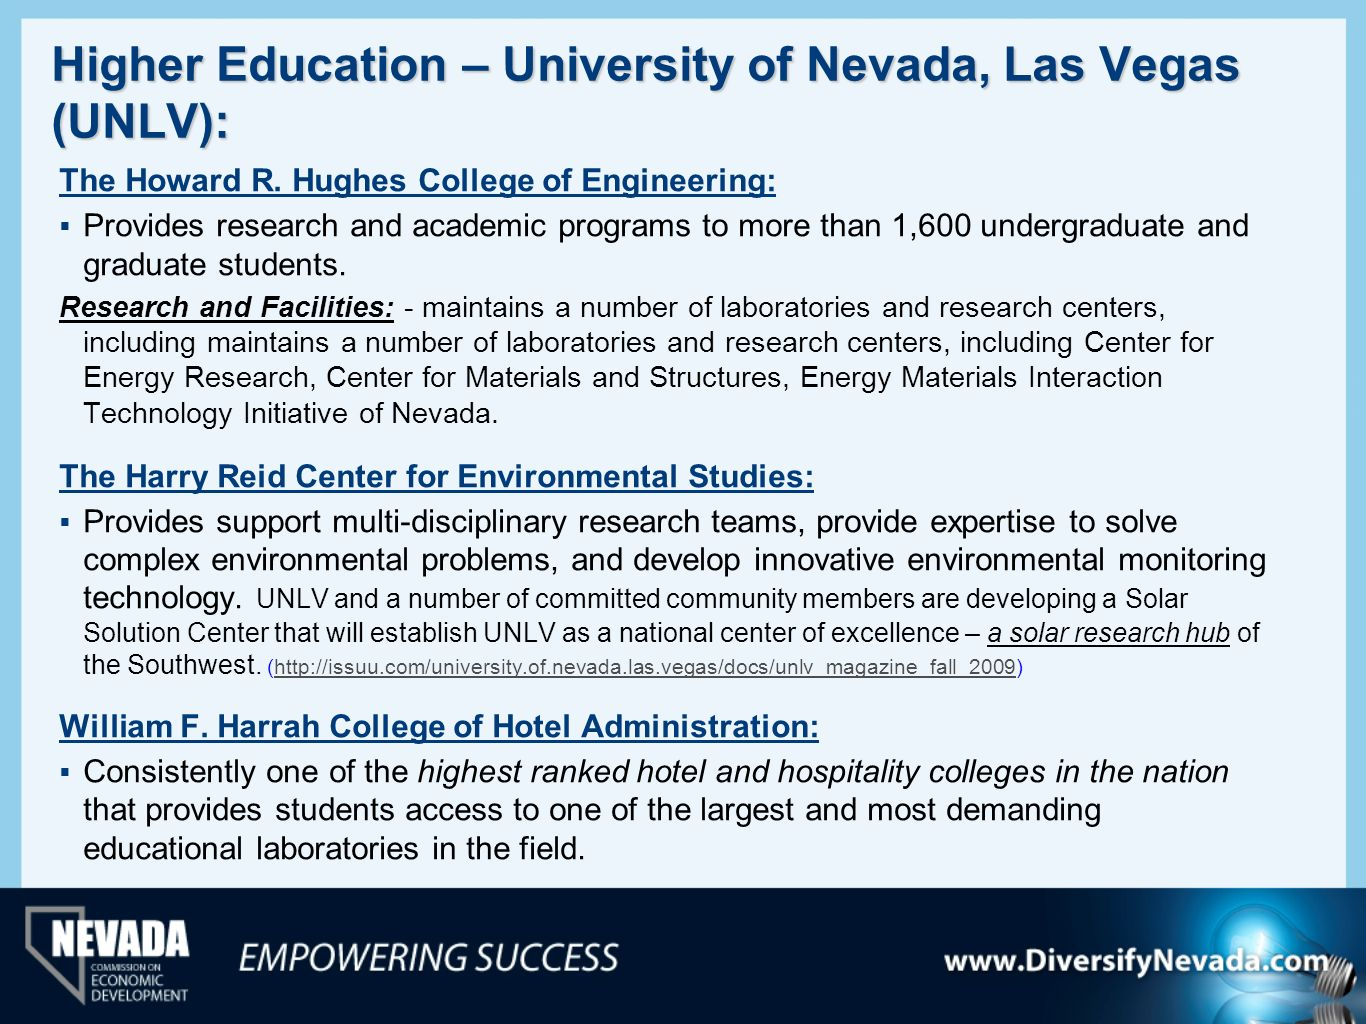 Higher Education – University of Nevada, Las Vegas (UNLV):